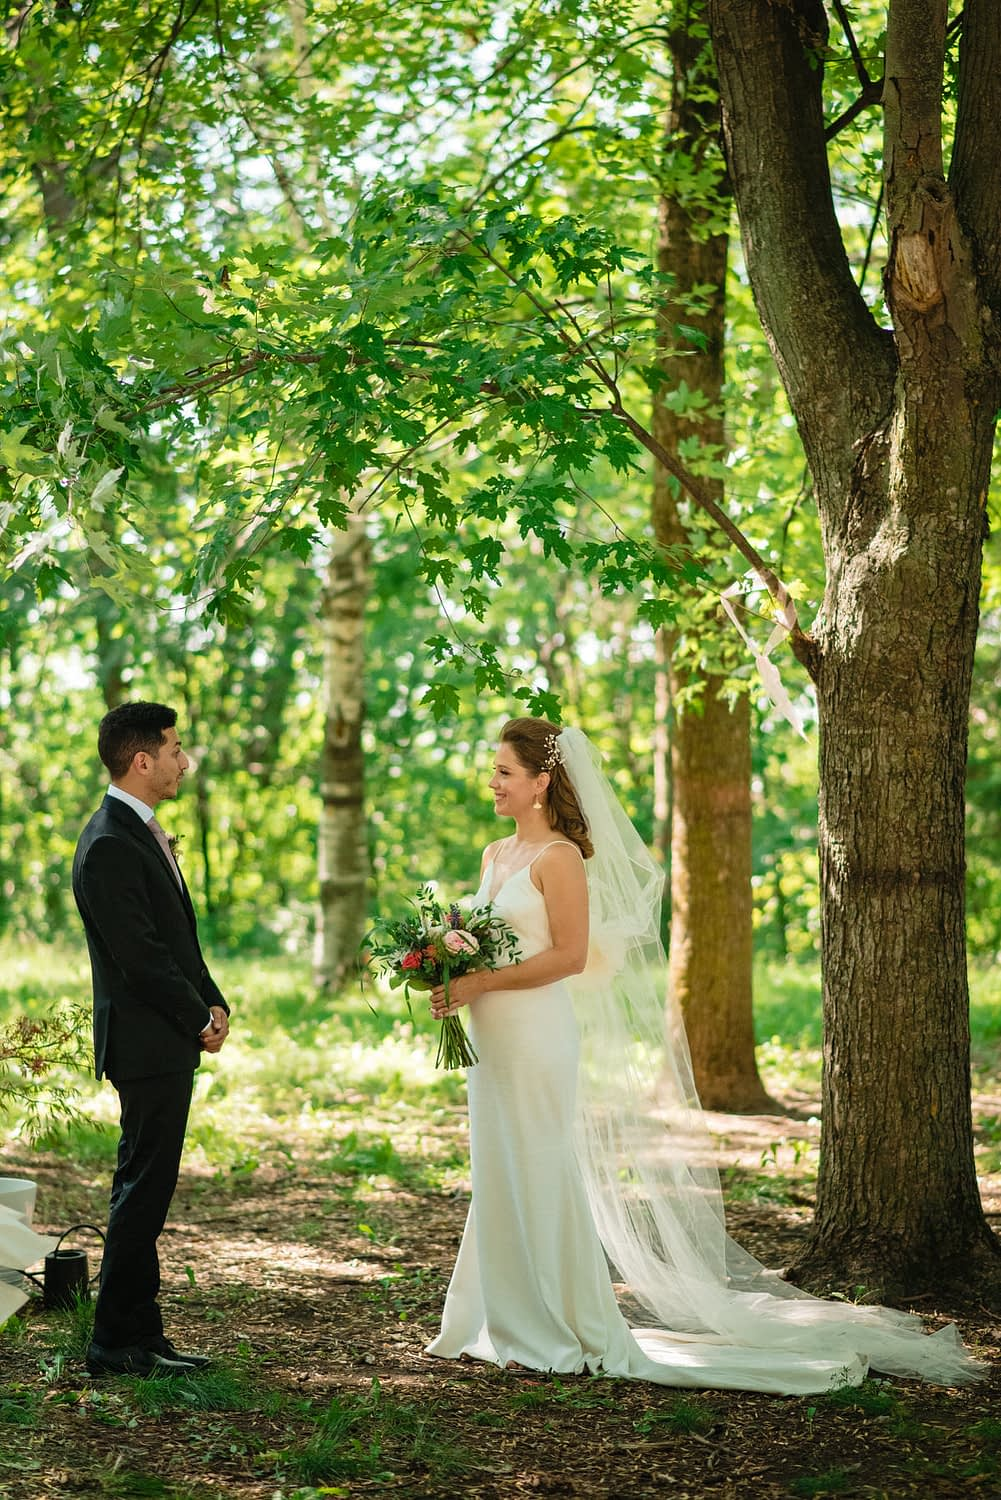 Wedding couple standing under tree in park wedding during the pandemic